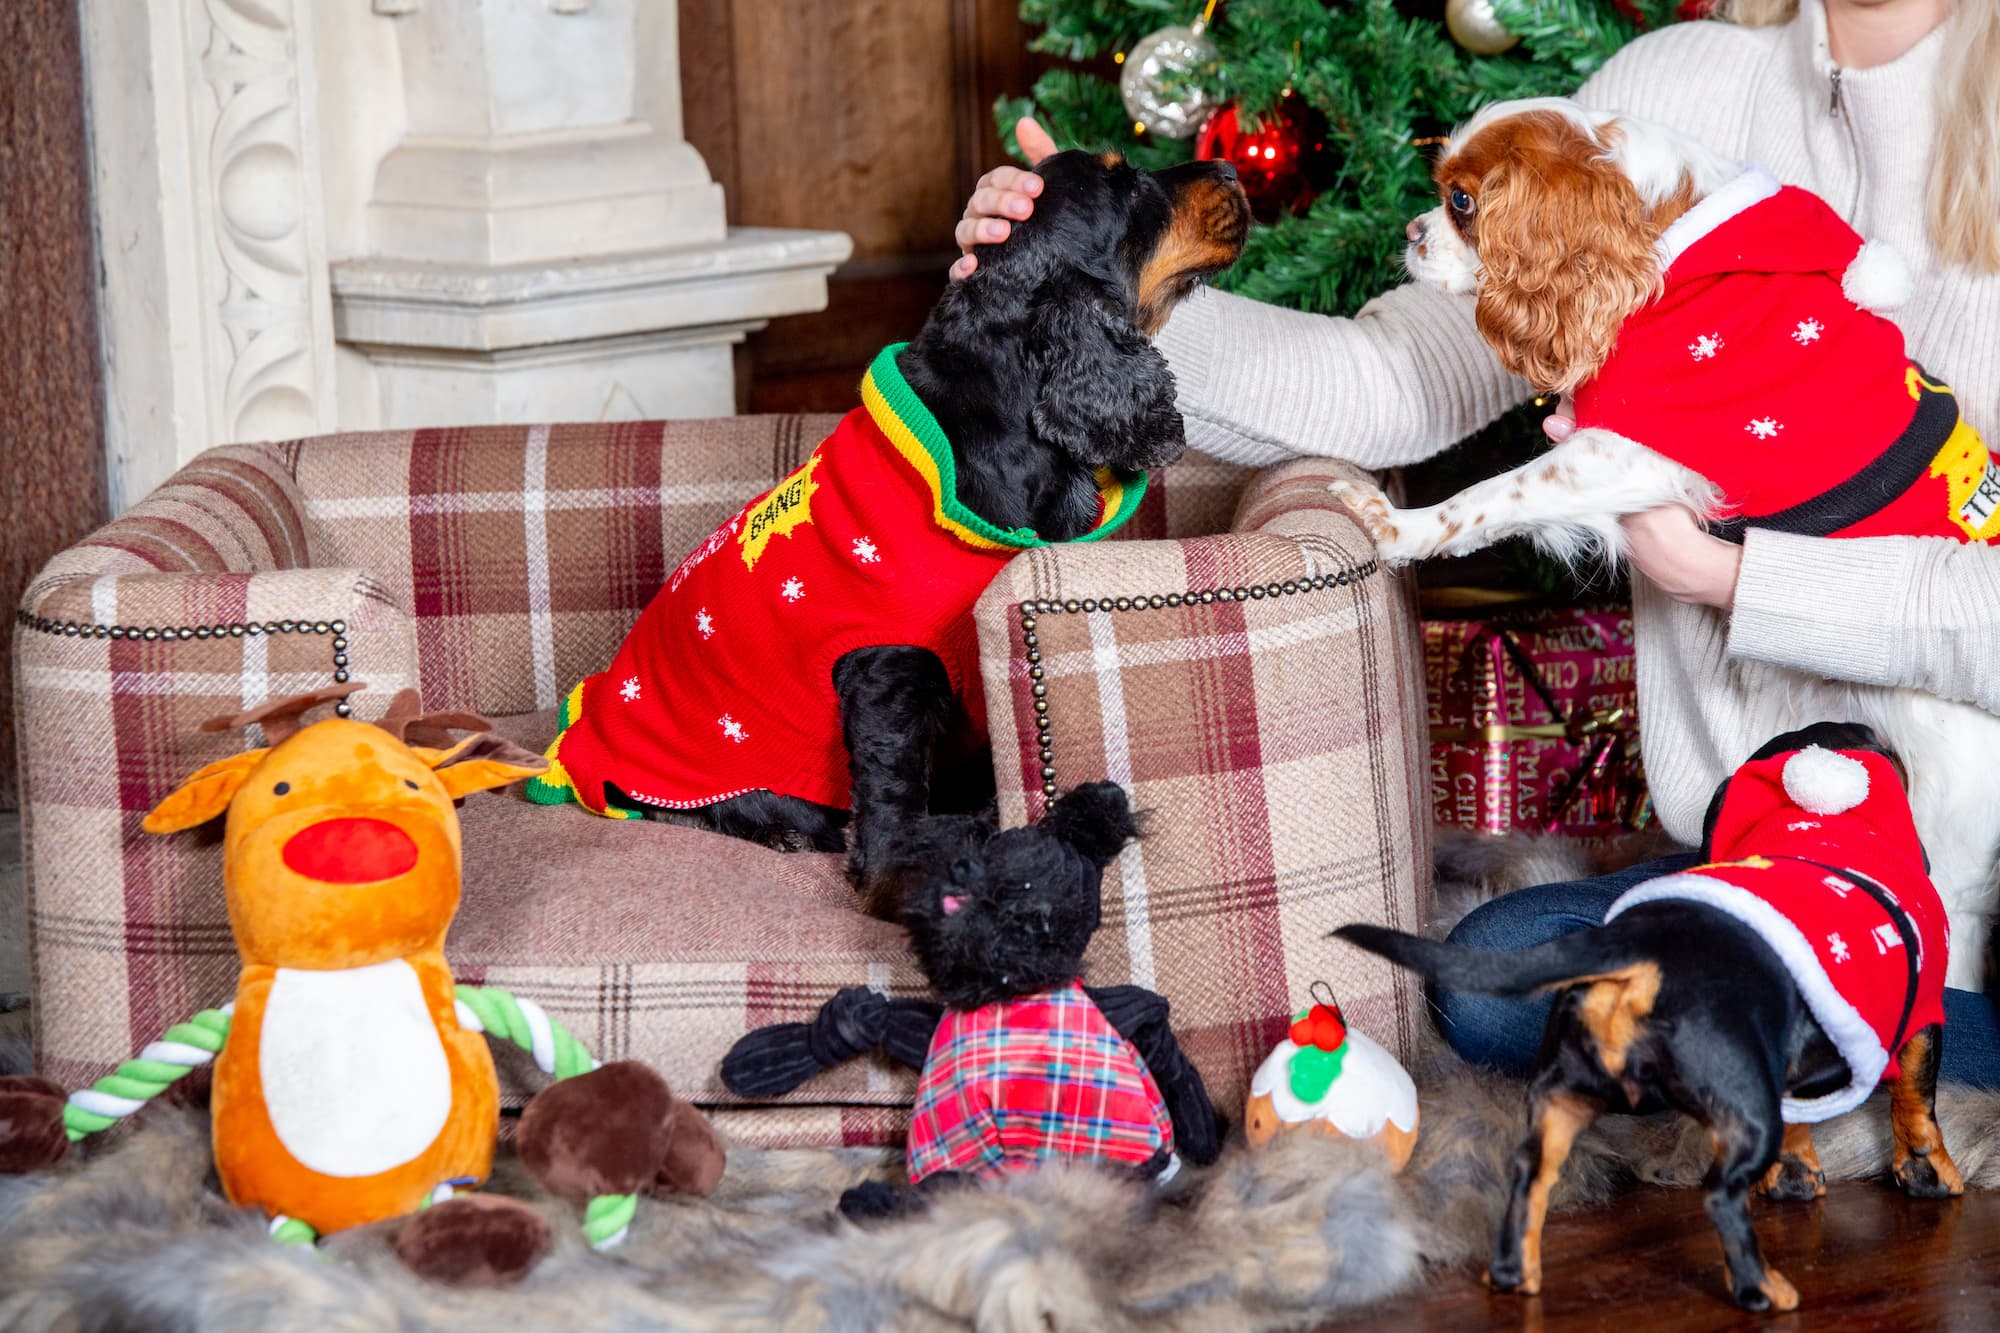 Dogs dressed up for Christmas with their female owner. Surrounded by Christmas dog toys and presents.